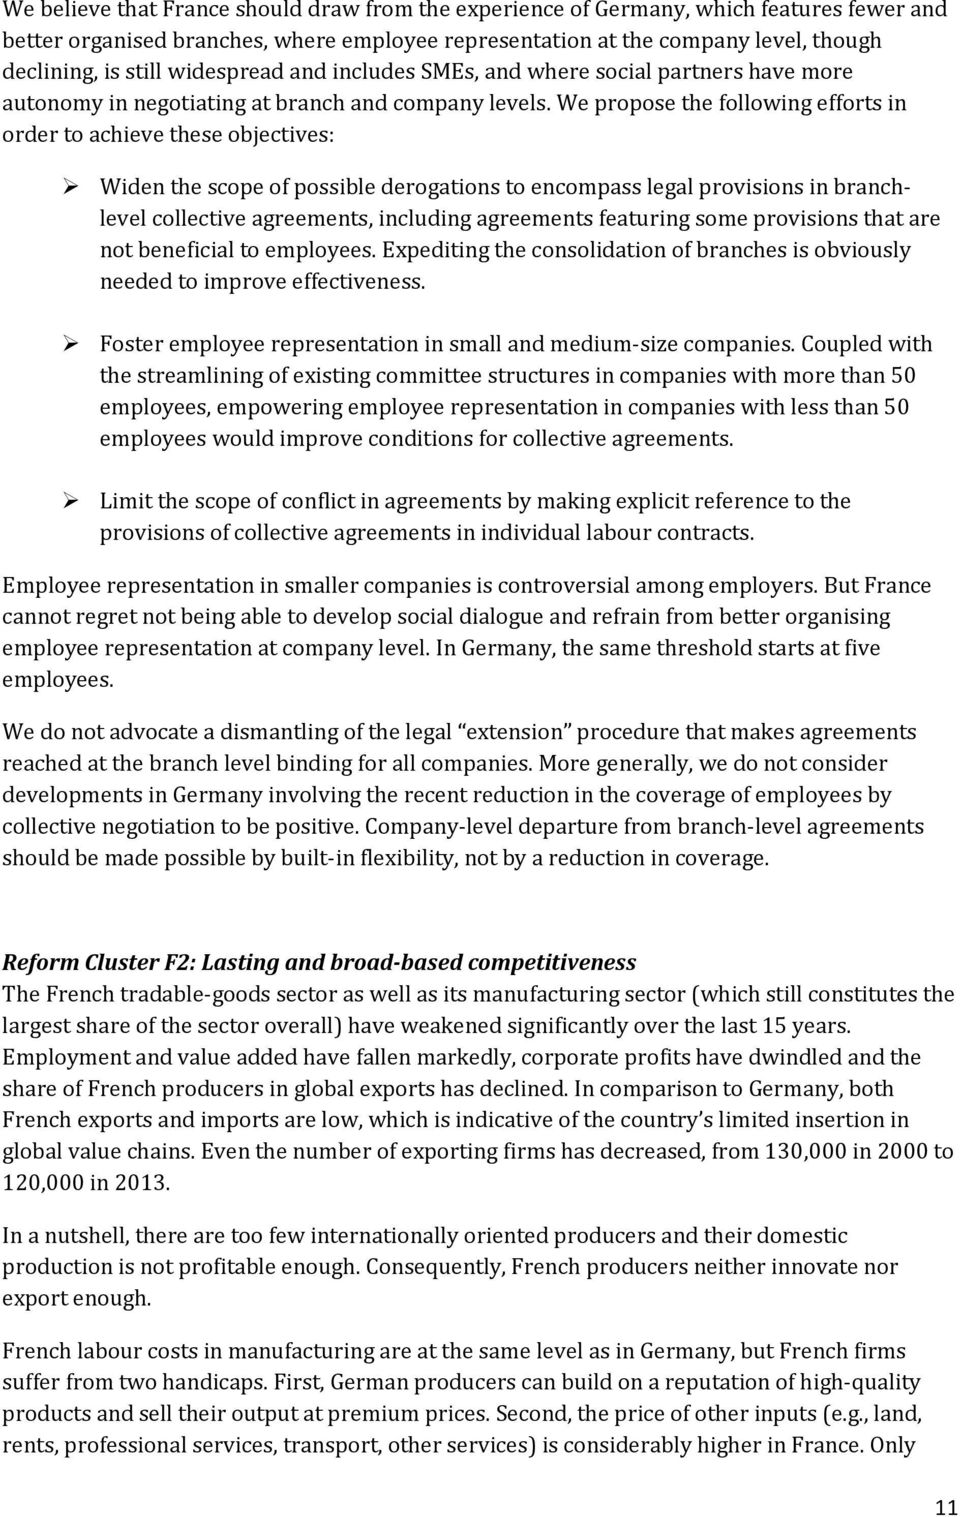 We propose the following efforts in order to achieve these objectives: Widen the scope of possible derogations to encompass legal provisions in branchlevel collective agreements, including agreements